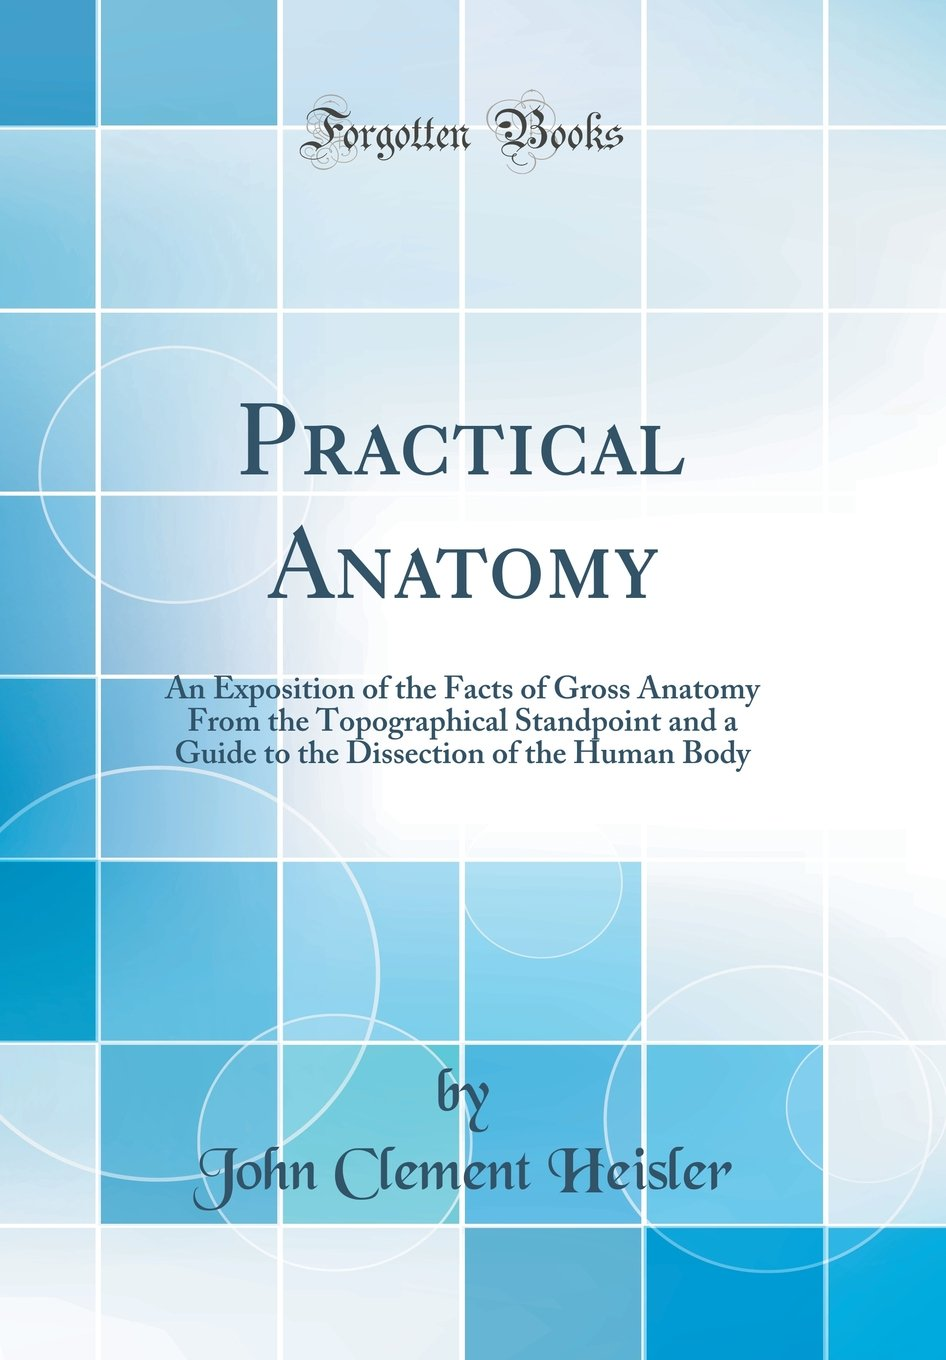 Download Practical Anatomy: An Exposition of the Facts of Gross Anatomy From the Topographical Standpoint and a Guide to the Dissection of the Human Body (Classic Reprint) ebook